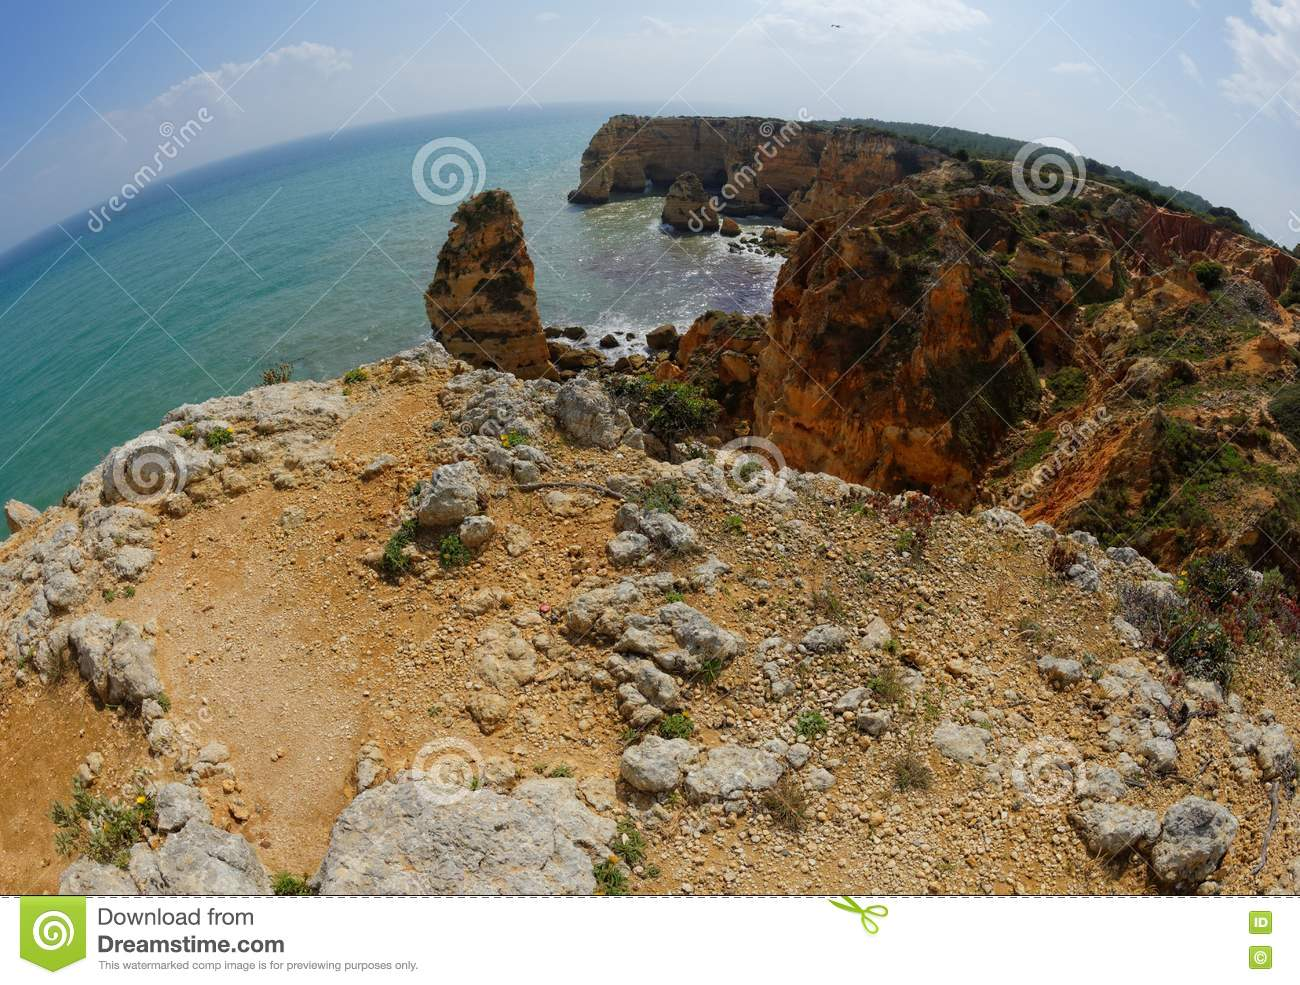 Fisheye view of Praia da Marinha beach in Portugal